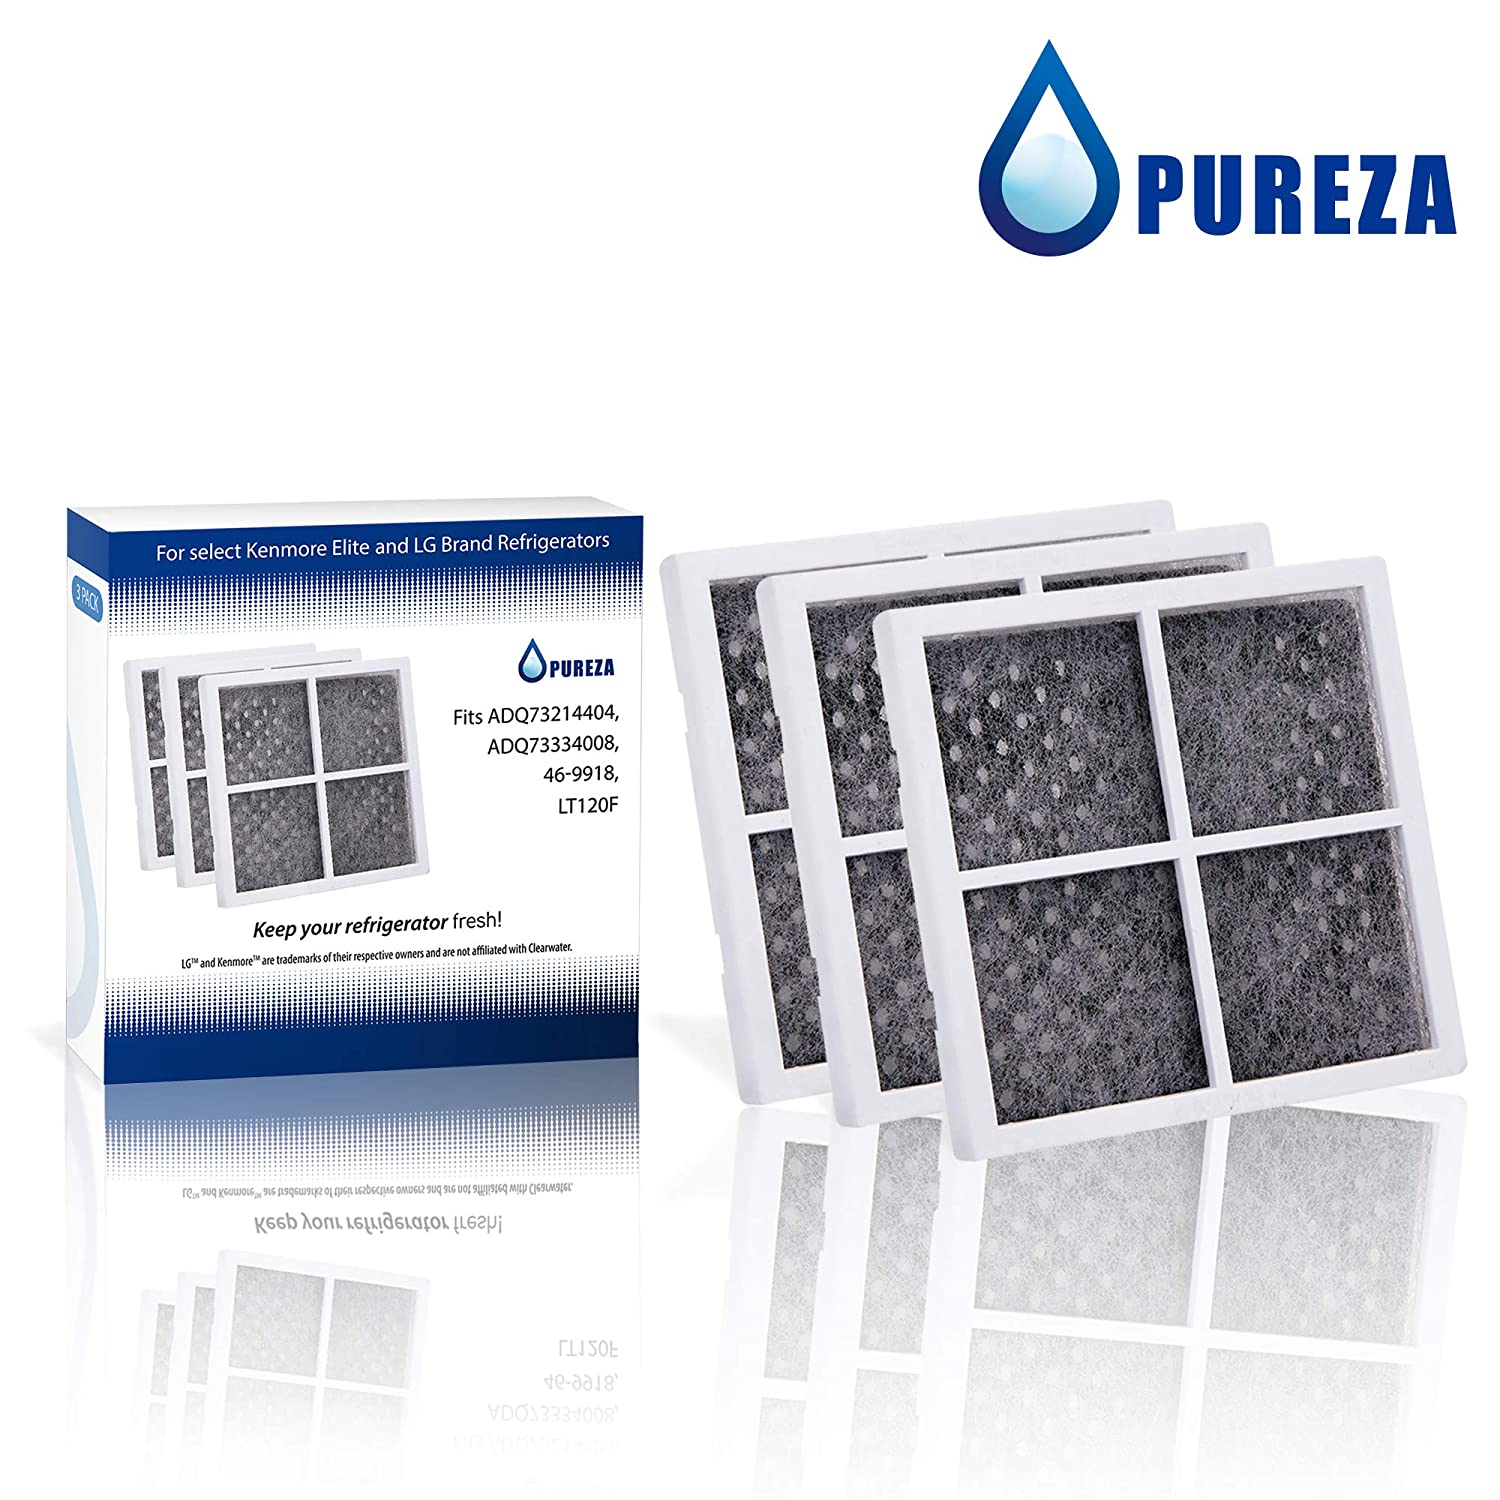 Replacement for LG LT120F, Kenmore 469918 Air Filter Compatible with ADQ73214402, ADQ73214403, ADQ73214404, 46-9918, 9918 Refrigerator Air Filter by Pureza, Pack of 3